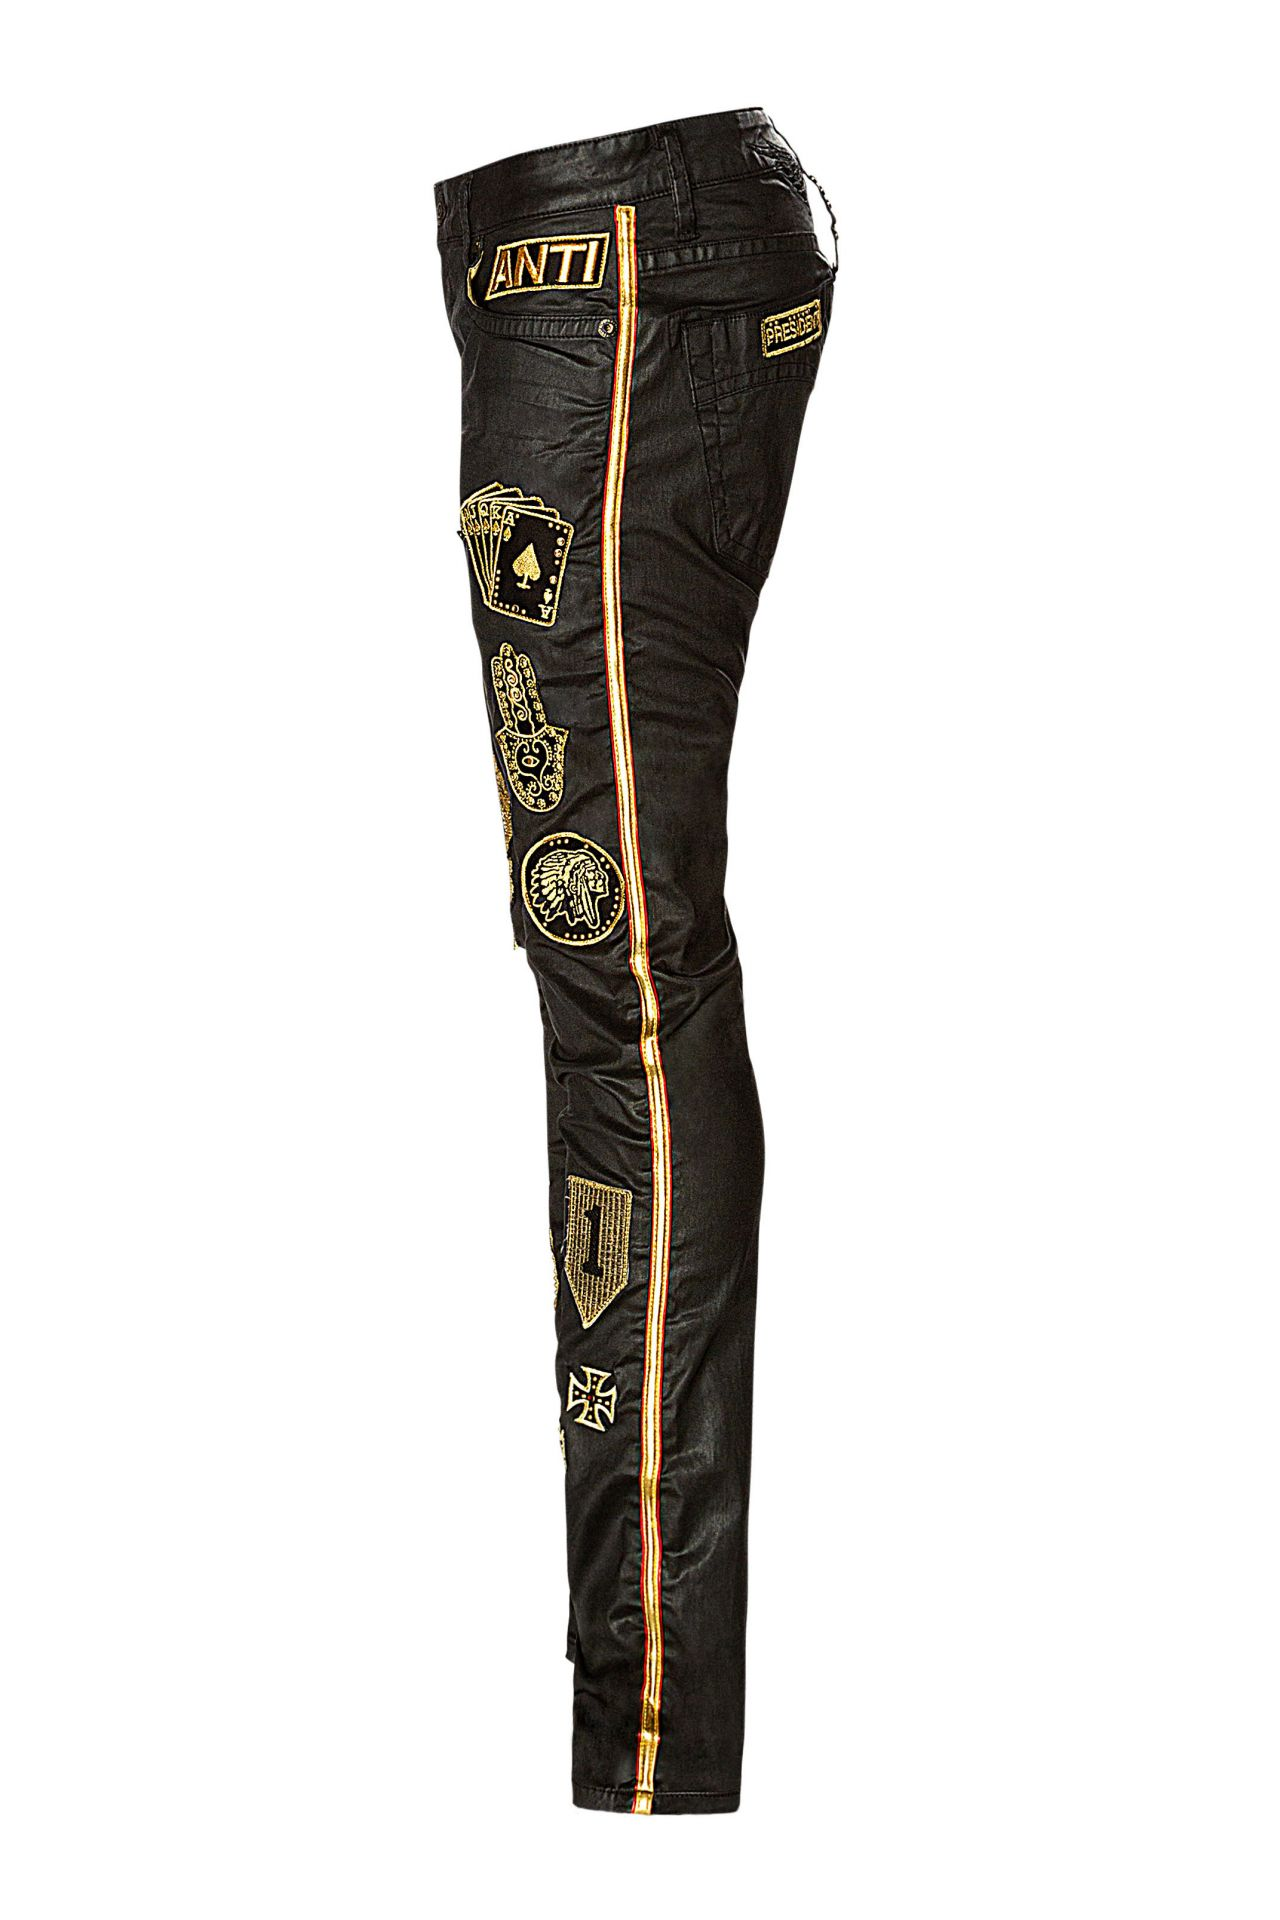 SKINNY IN GOLDSTRIPE ON BLACK WITH PATCHWORK